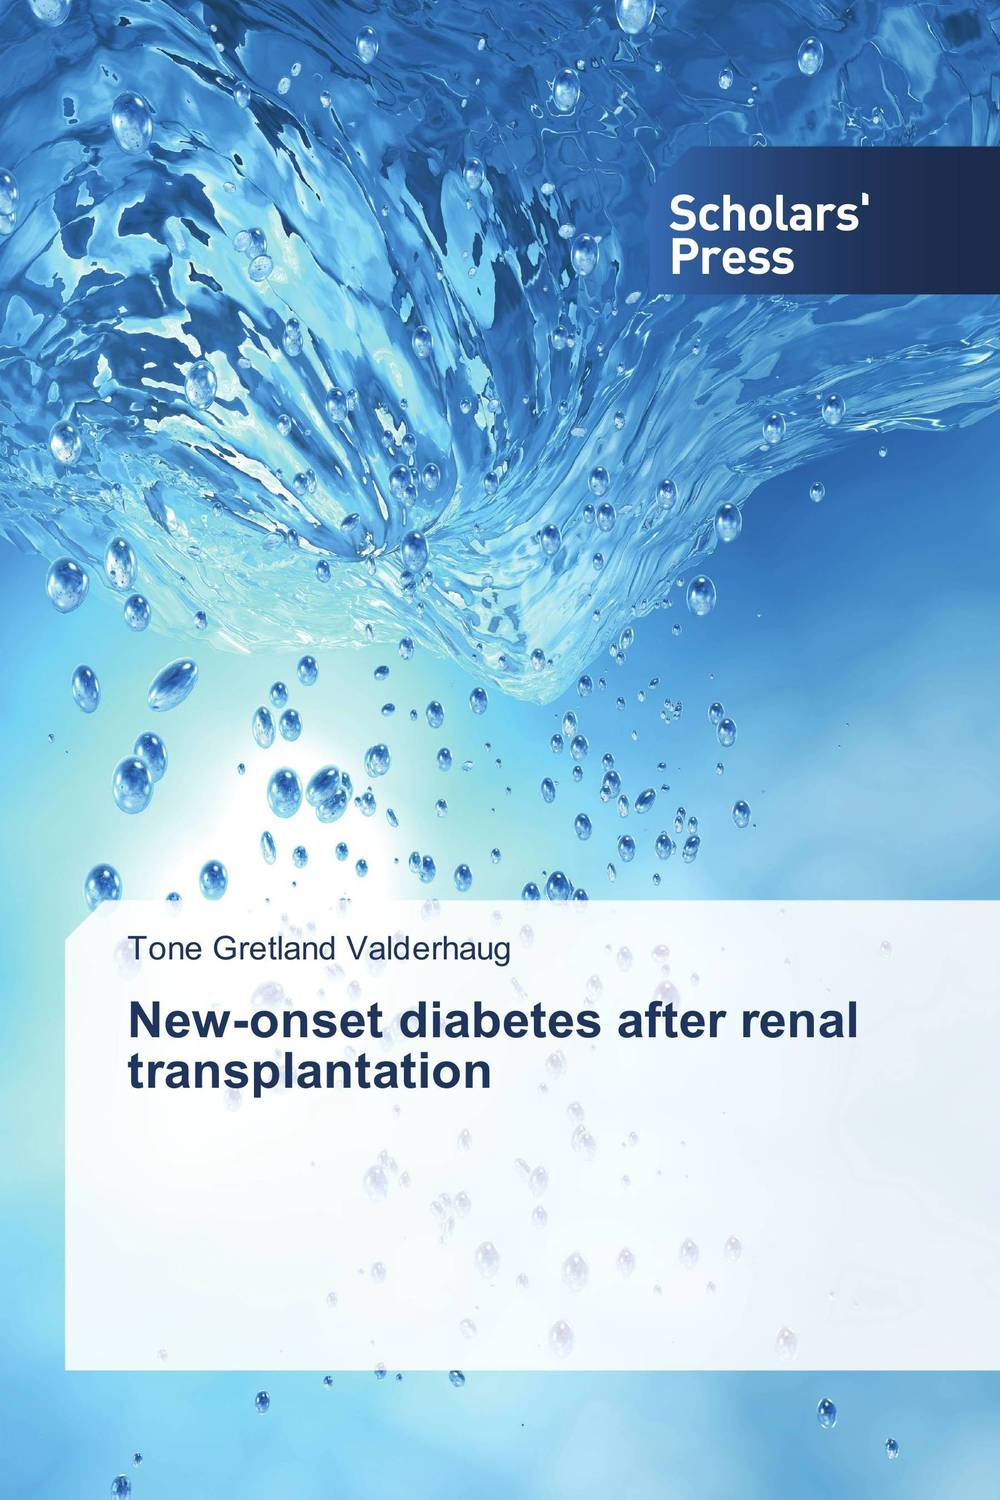 New-onset diabetes after renal transplantation transplantation